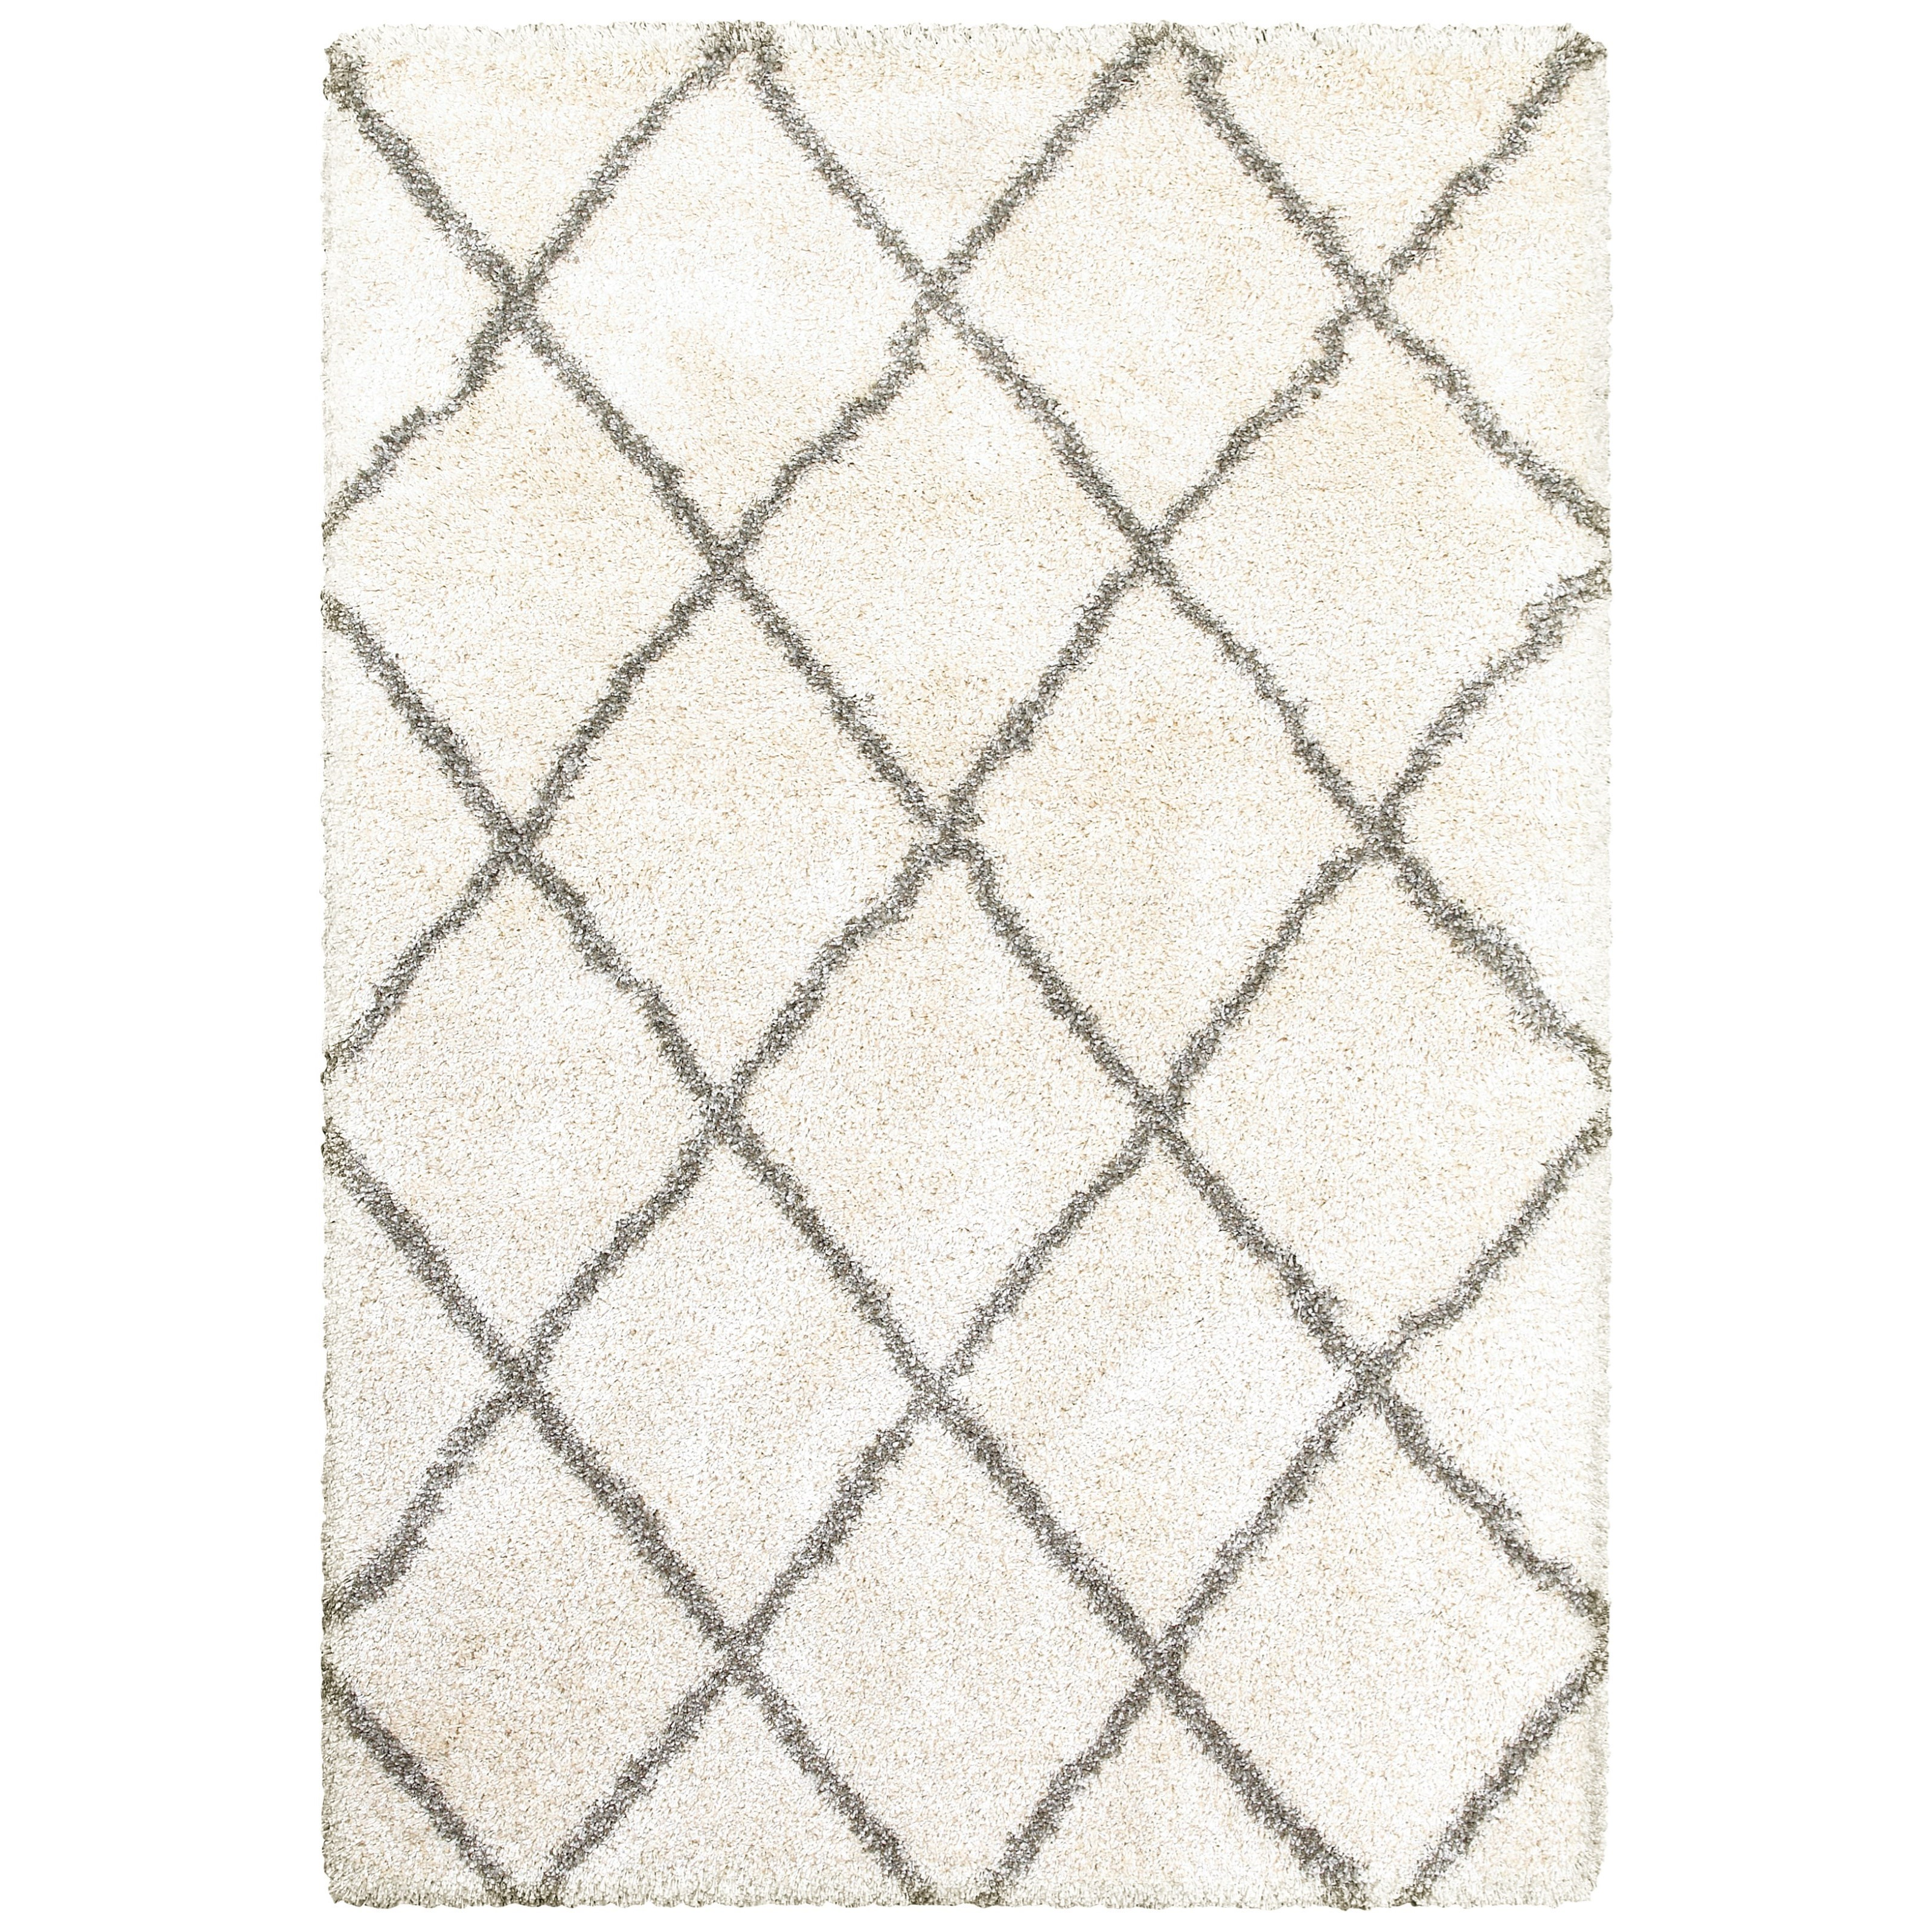 """Henderson 9'10"""" X 12'10"""" Shag Ivory/ Grey Rectangle Ru by Oriental Weavers at Miller Waldrop Furniture and Decor"""